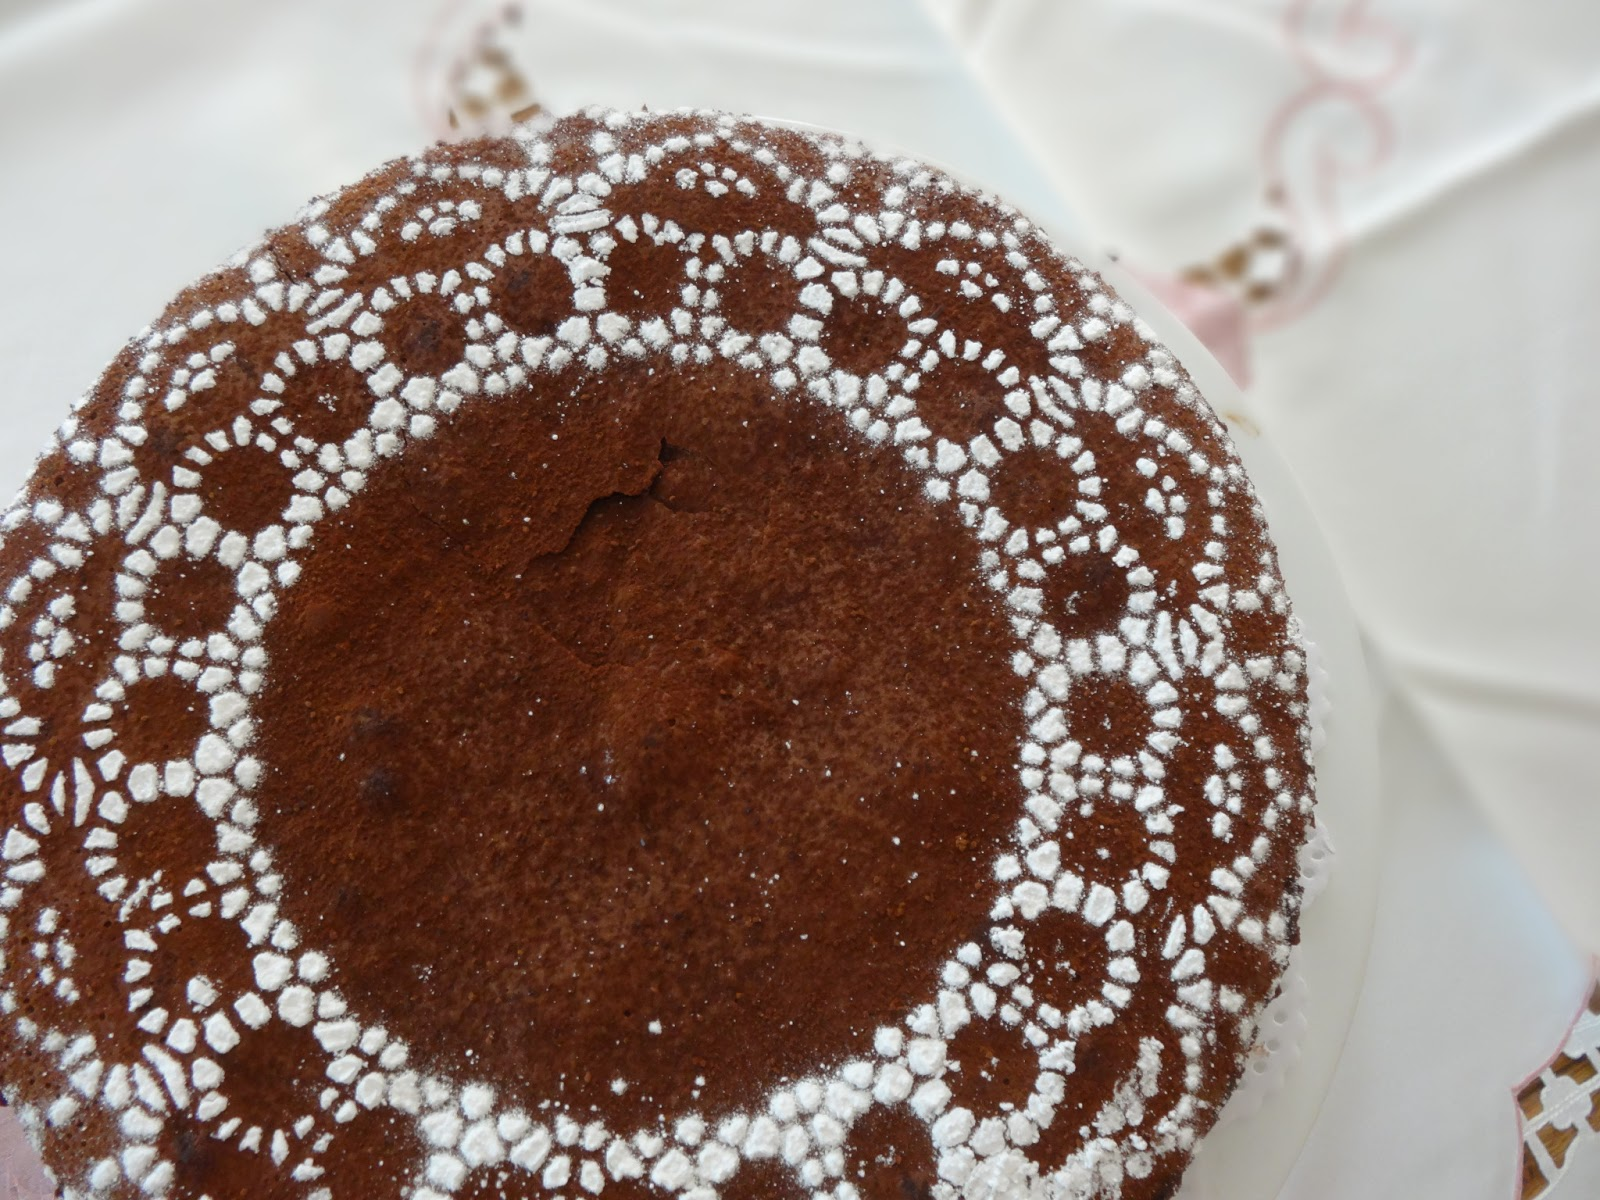 Chocolate Cake Decoration Pictures : Rosie Bakes It: Flourless Chocolate Cake